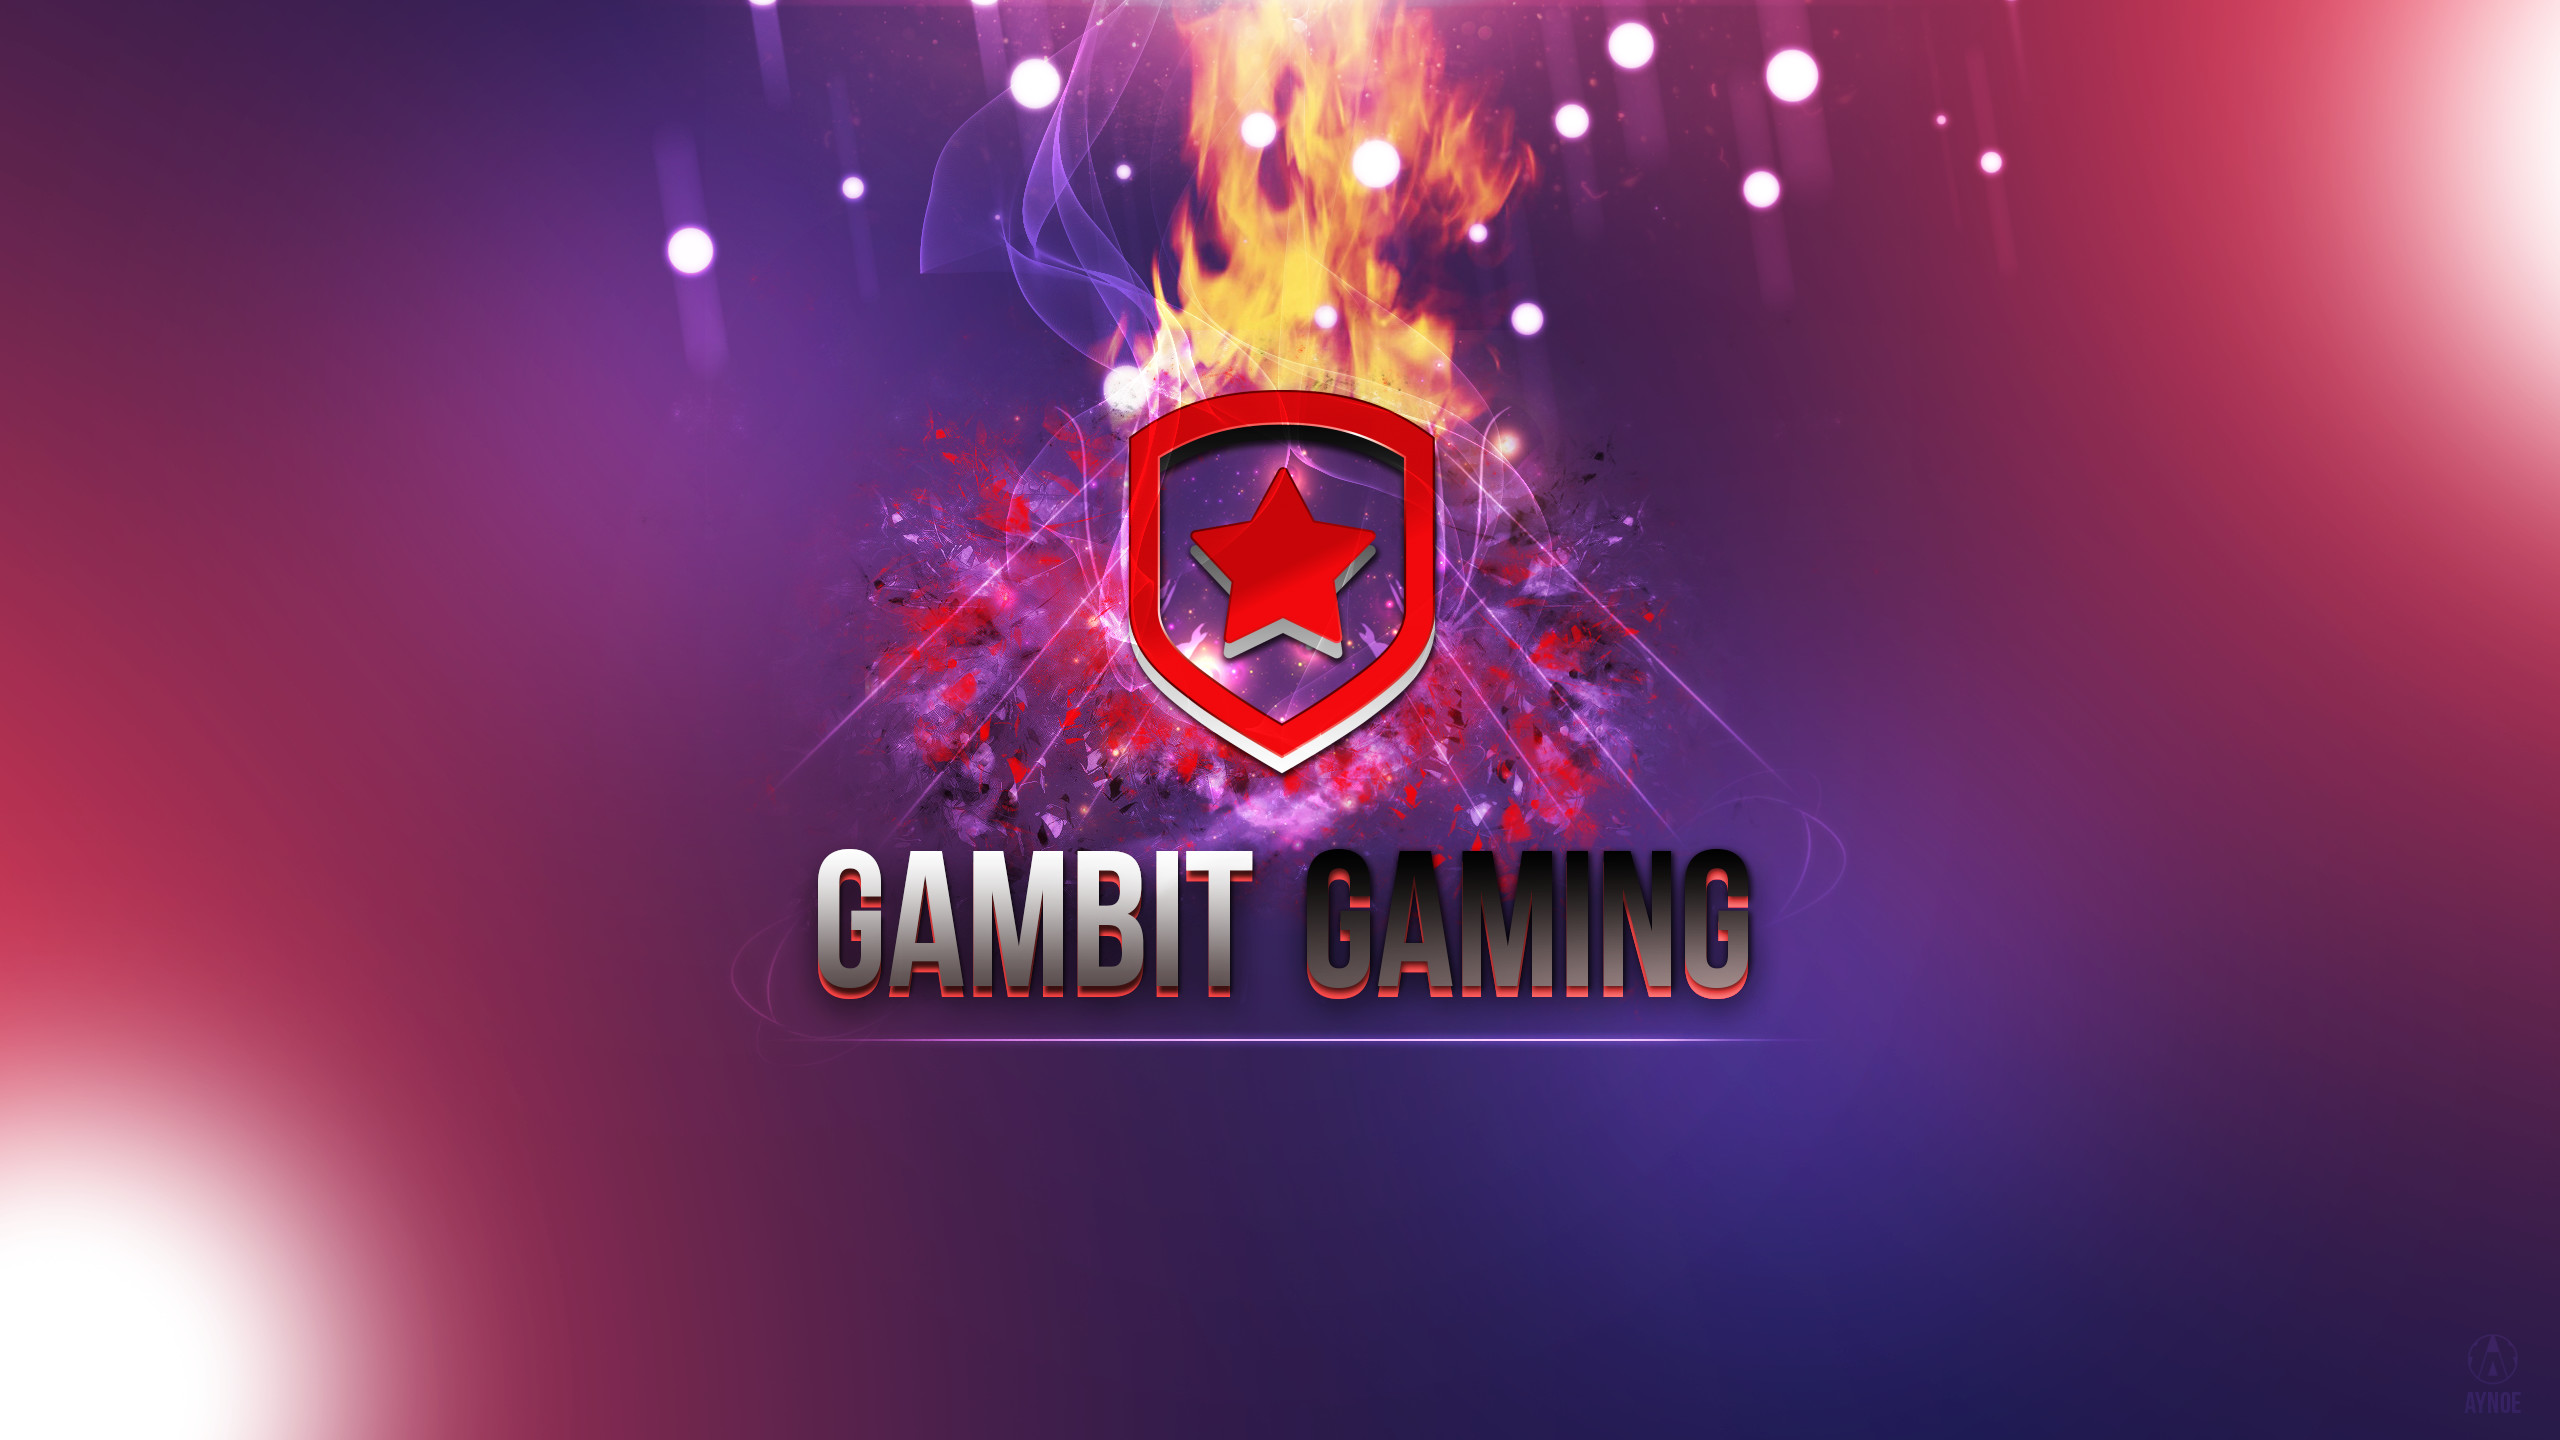 2560x1440 ... Gambit Gaming 2 Wallpaper Logo - League of Legends by Aynoe